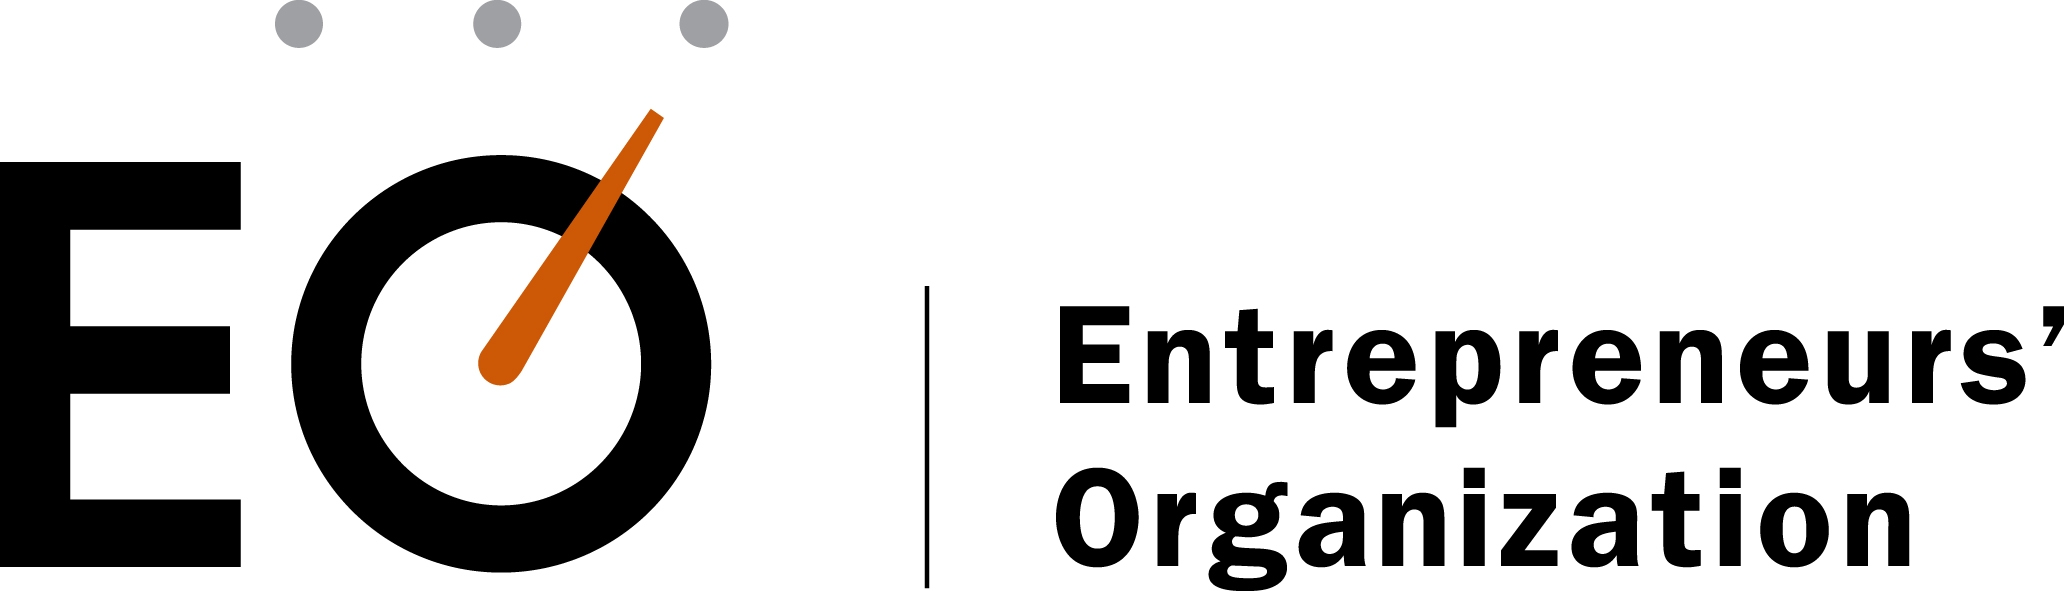 Entrepreneurs-Organization Logo Better.jpg